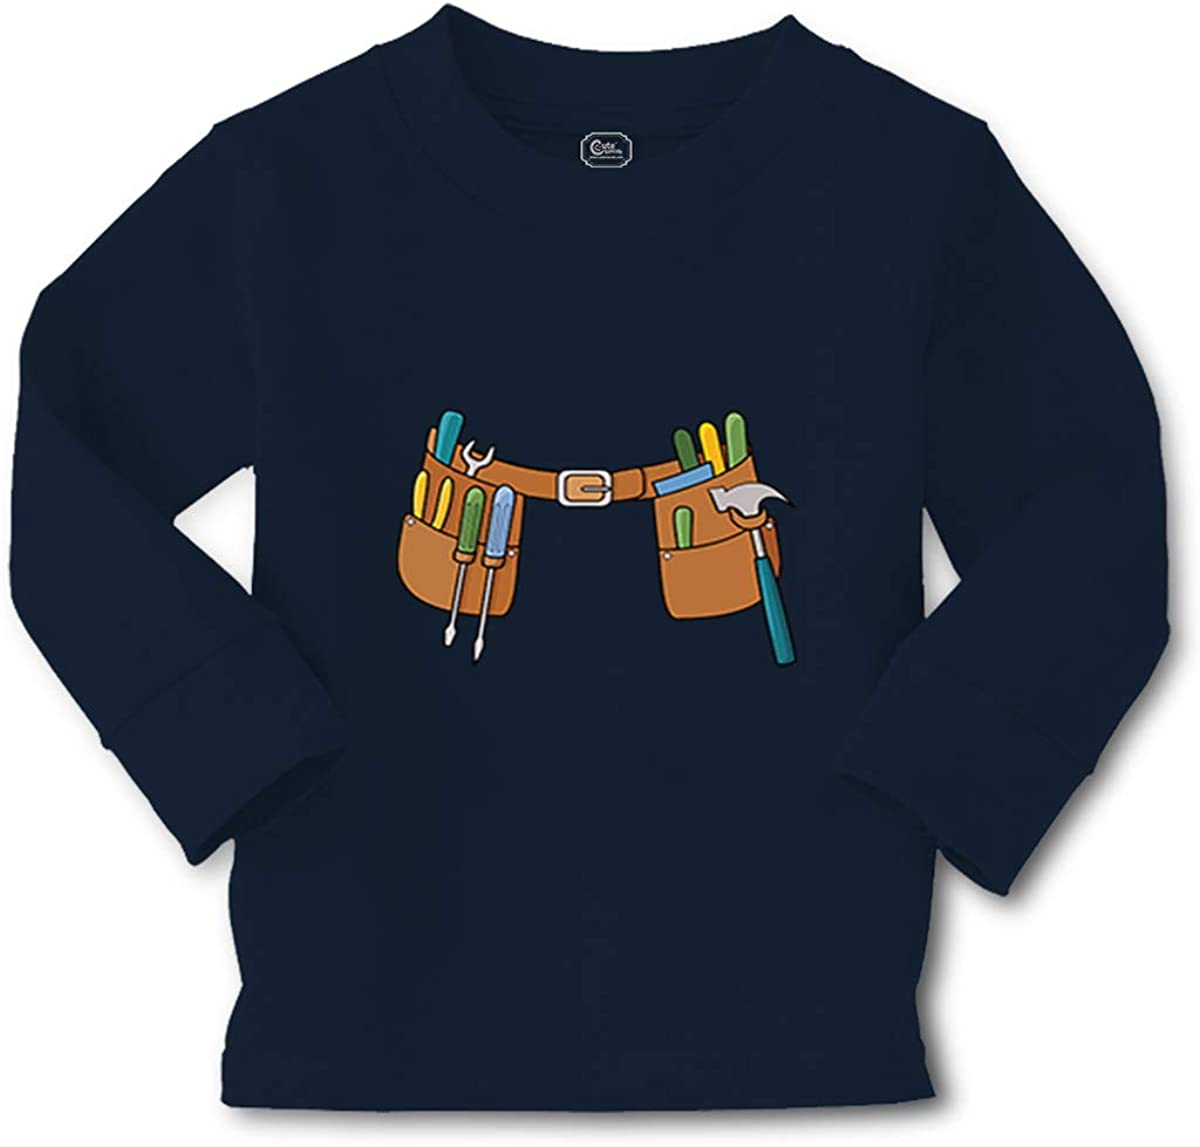 Cute Rascals Kids Long Sleeve T Shirt Tool Belt Funny Humor Cotton Boy & Girl Clothes Funny Graphic Tee Navy Design Only 4T